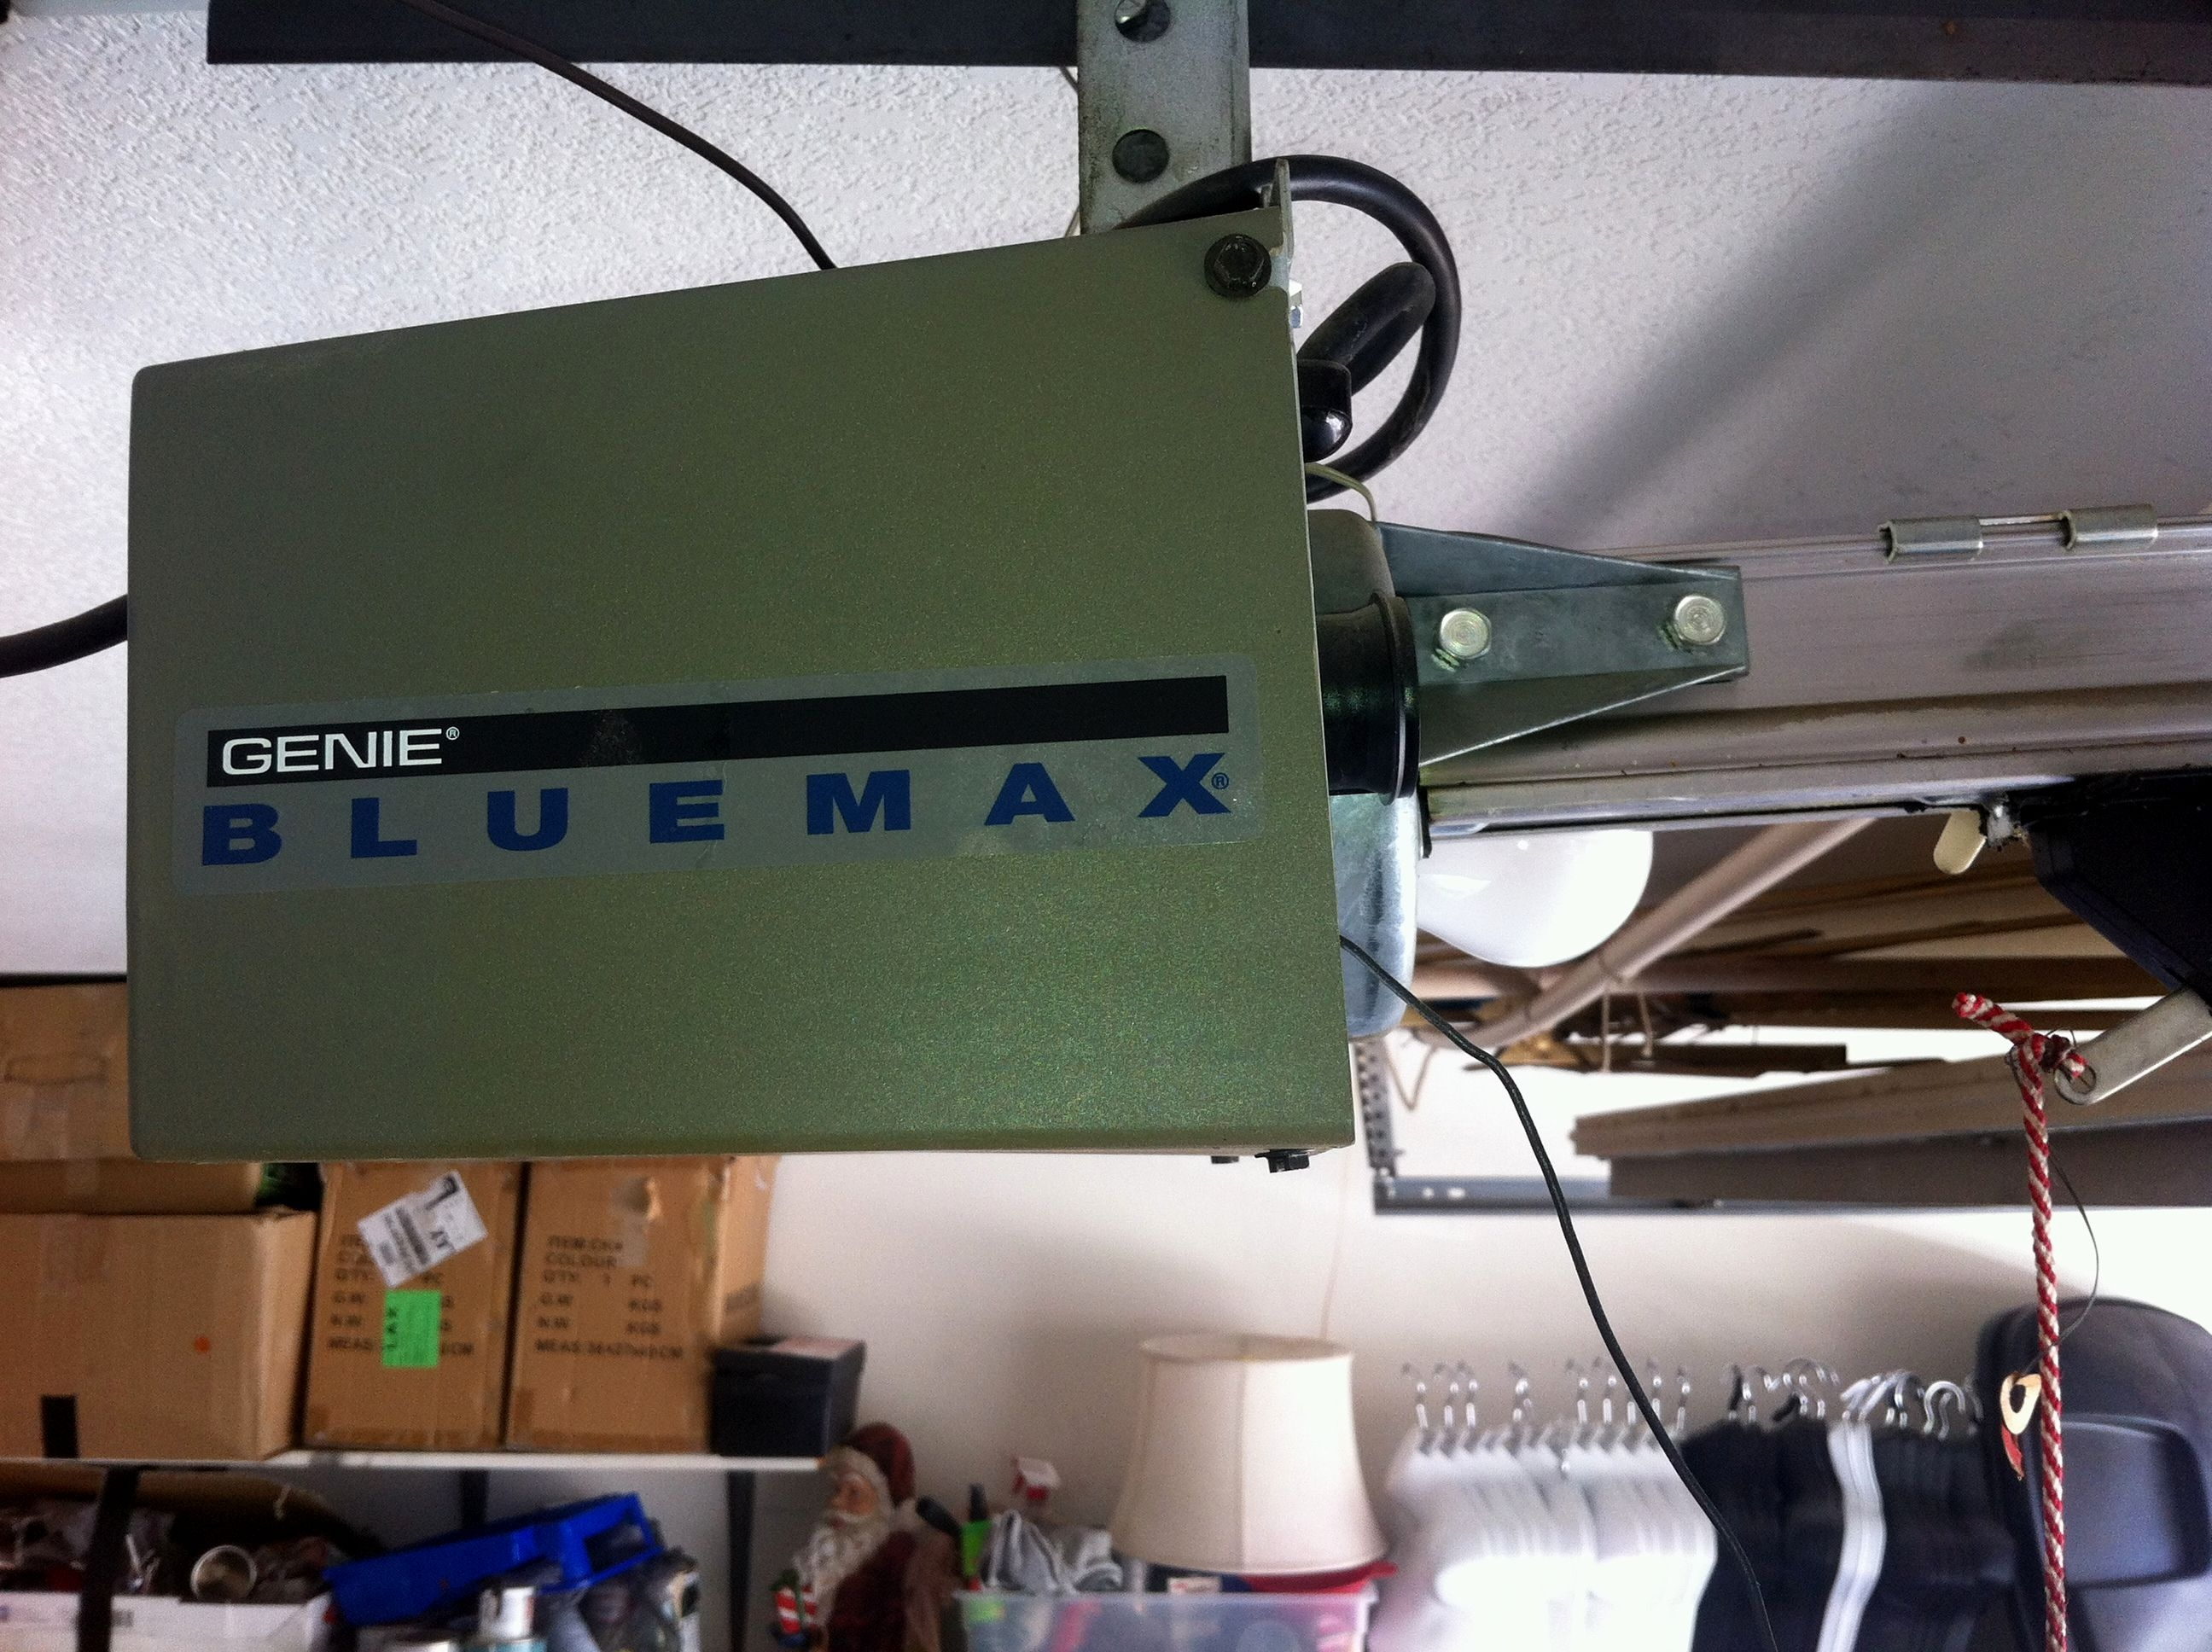 Genie pro max garage door opener troubleshooting home for Genie garage door